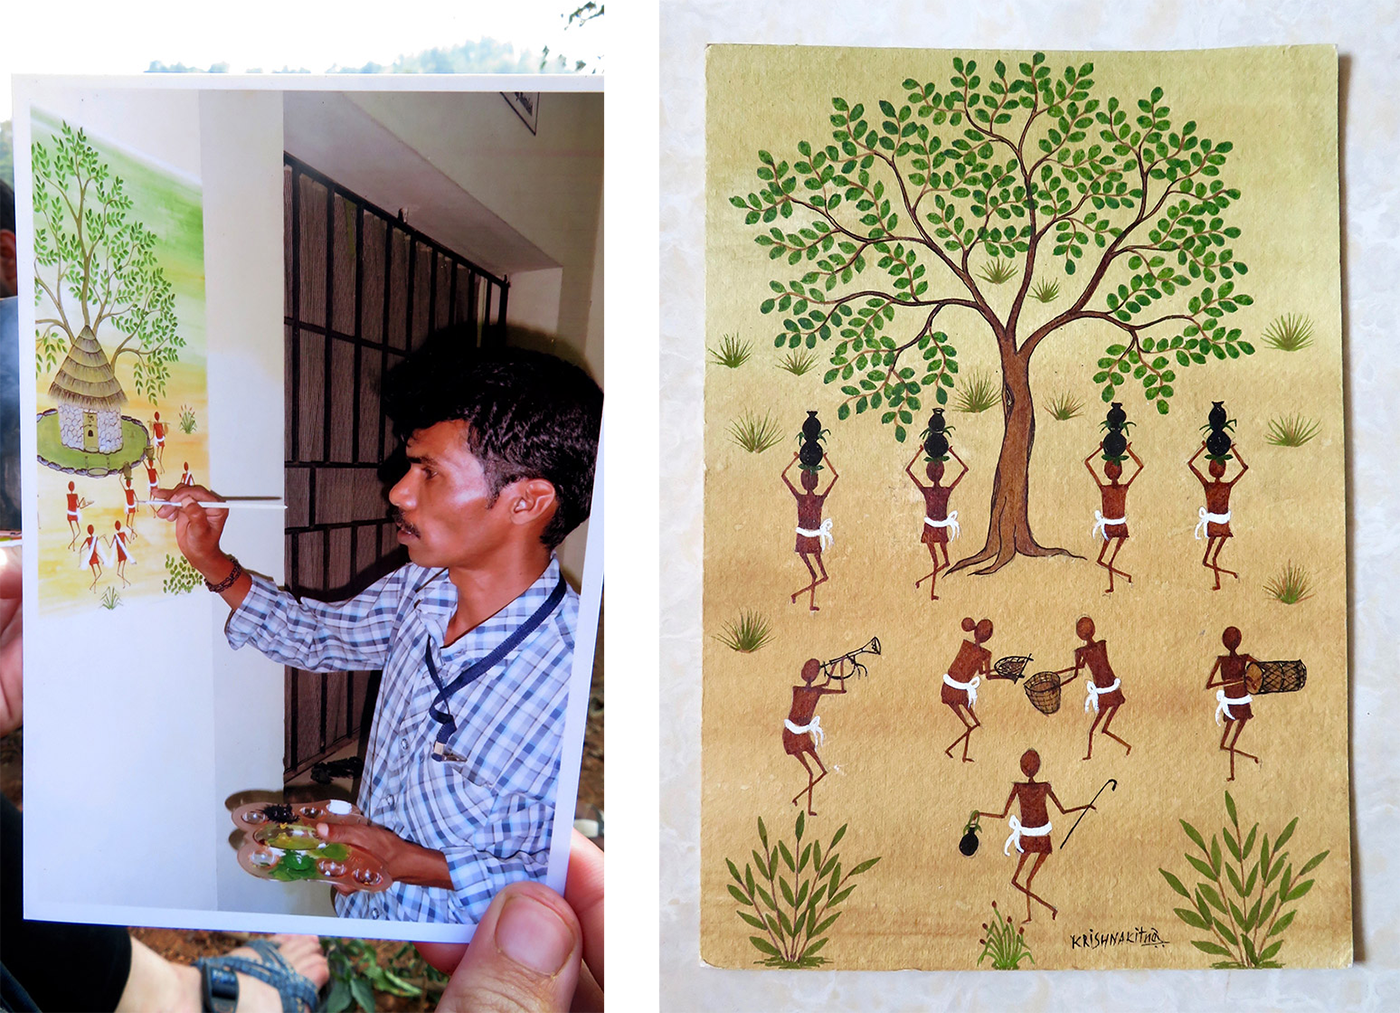 Left: A photograph of a photo of Krishna while painting. Right: One of his completed artworks